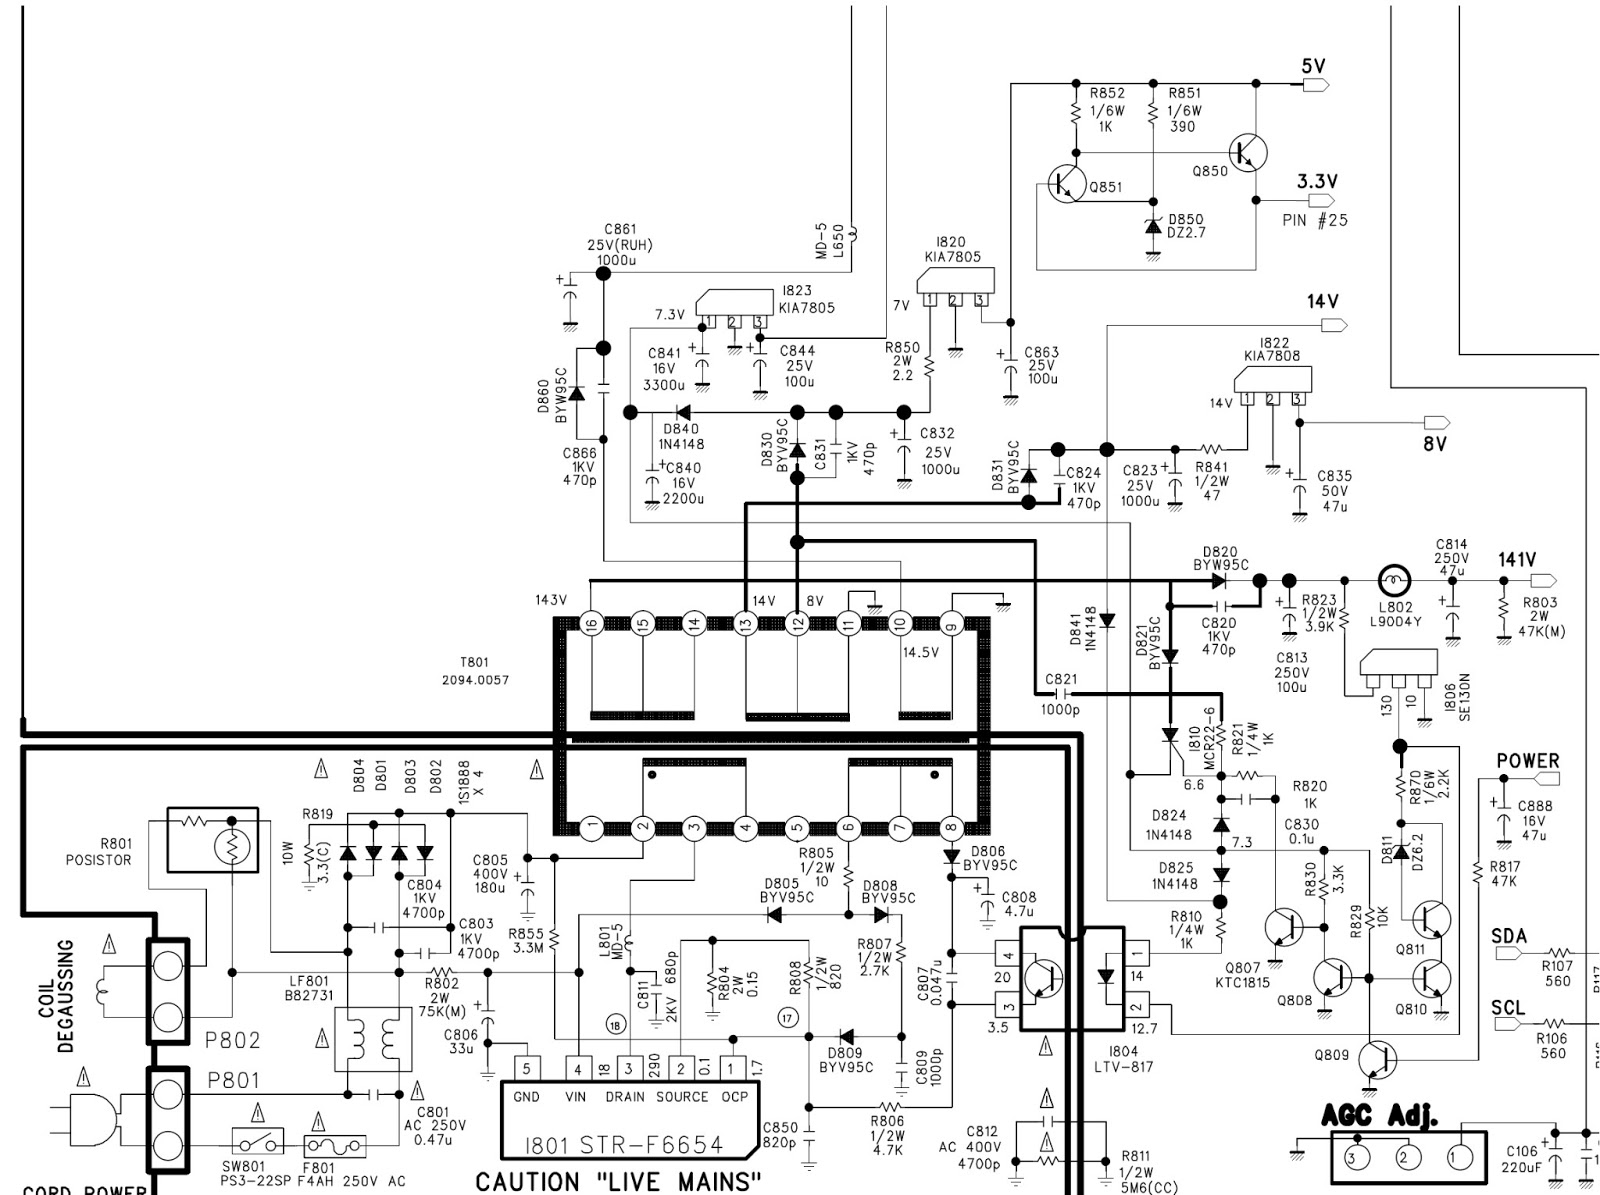 str f6654 based smps power supply schematic diagram daewoo dsc 3210 tv based circuit [ 1600 x 1195 Pixel ]